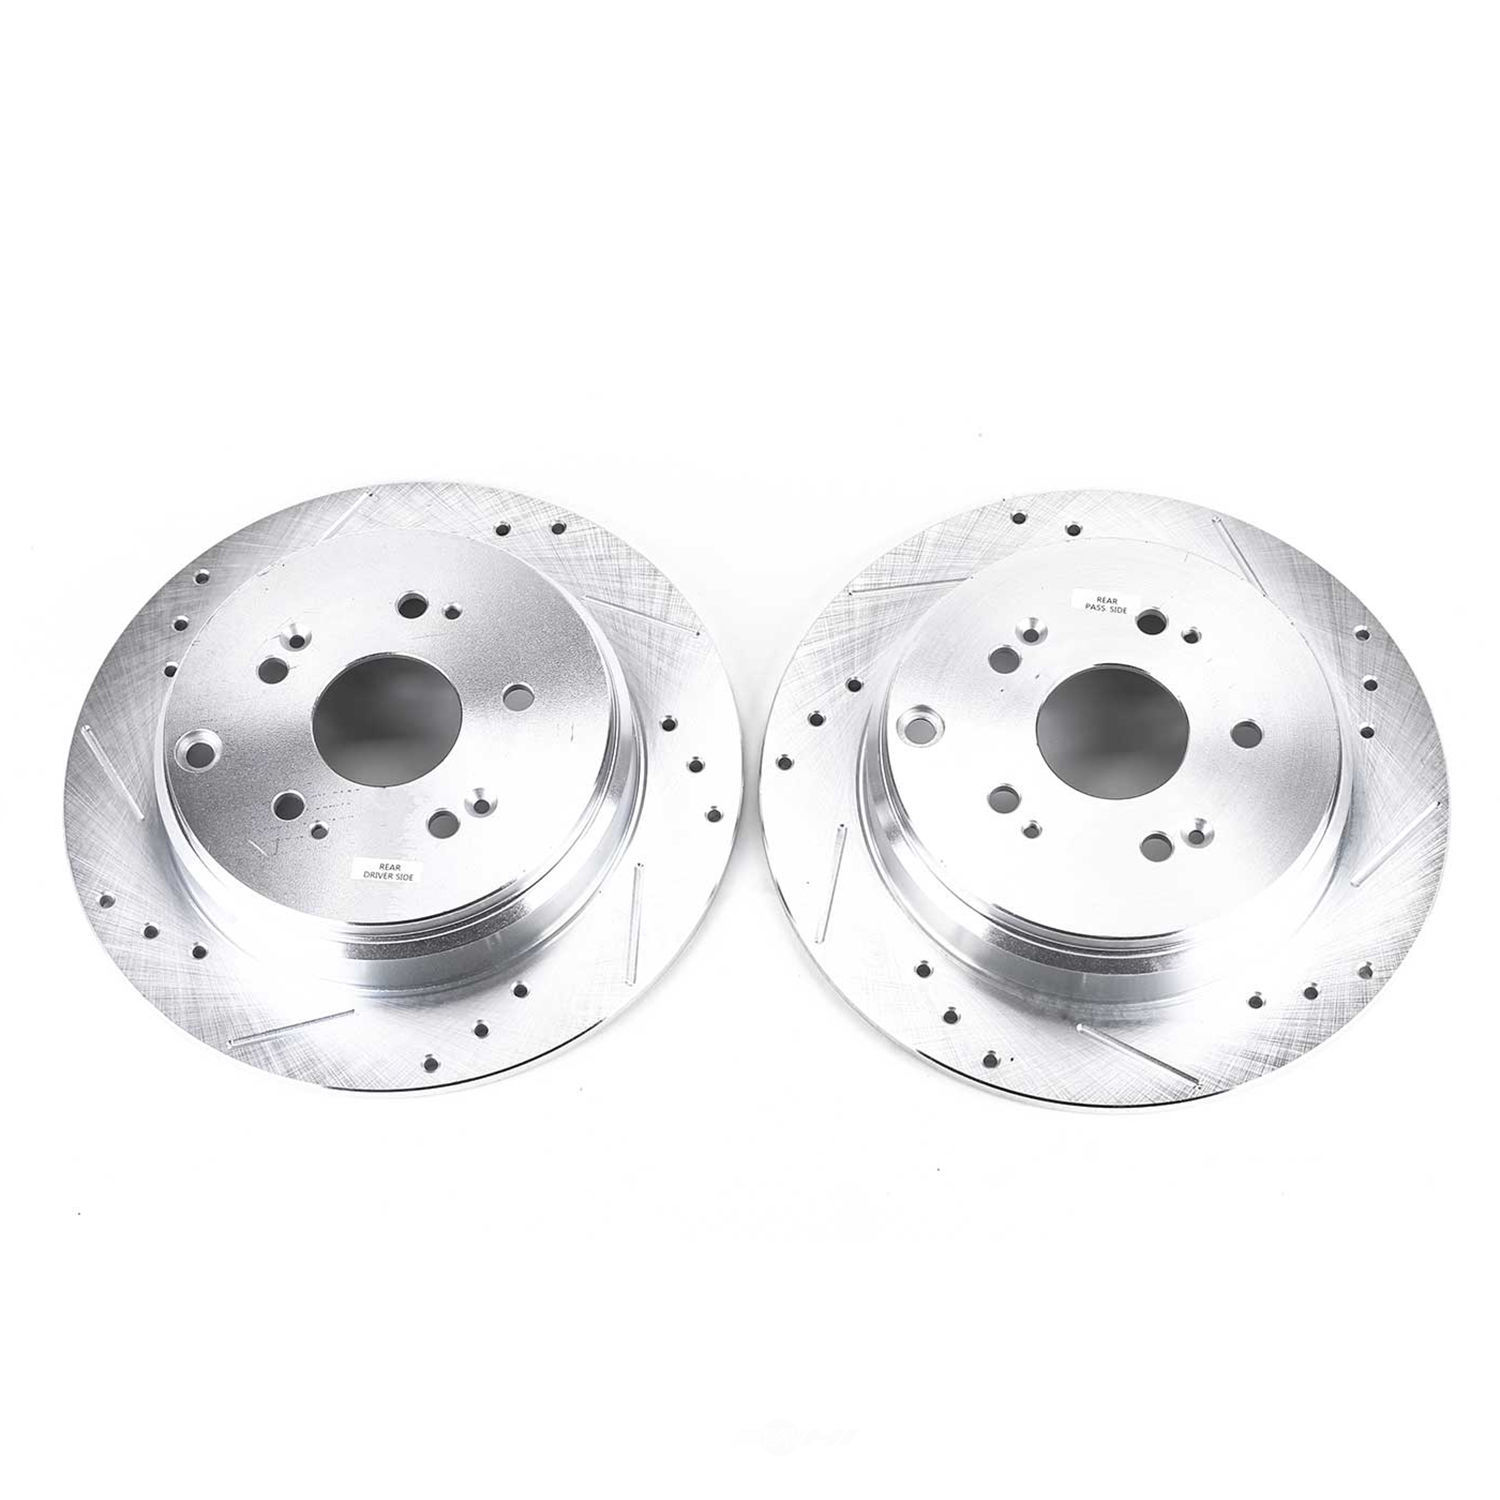 POWER STOP - Extreme Performance Drilled & Slotted Brake Rotor (Rear) - PWS JBR1158XPR